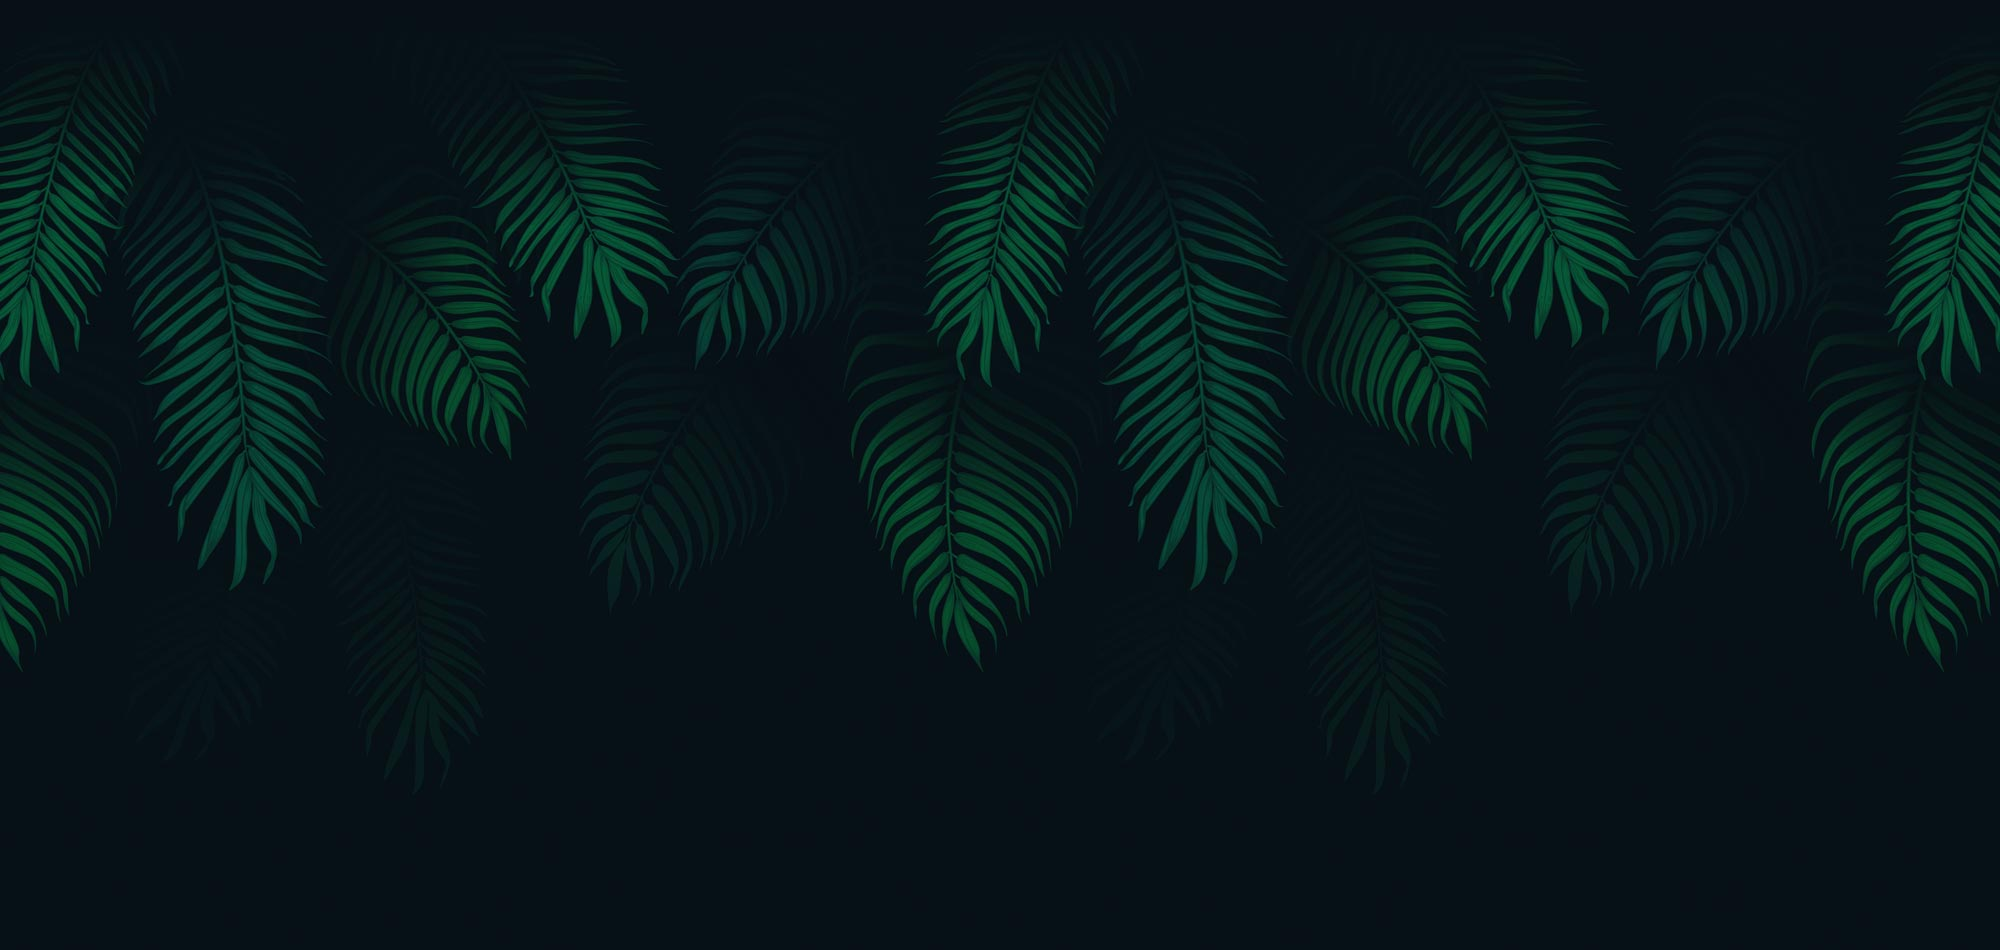 spearhead-creative-jungle-background